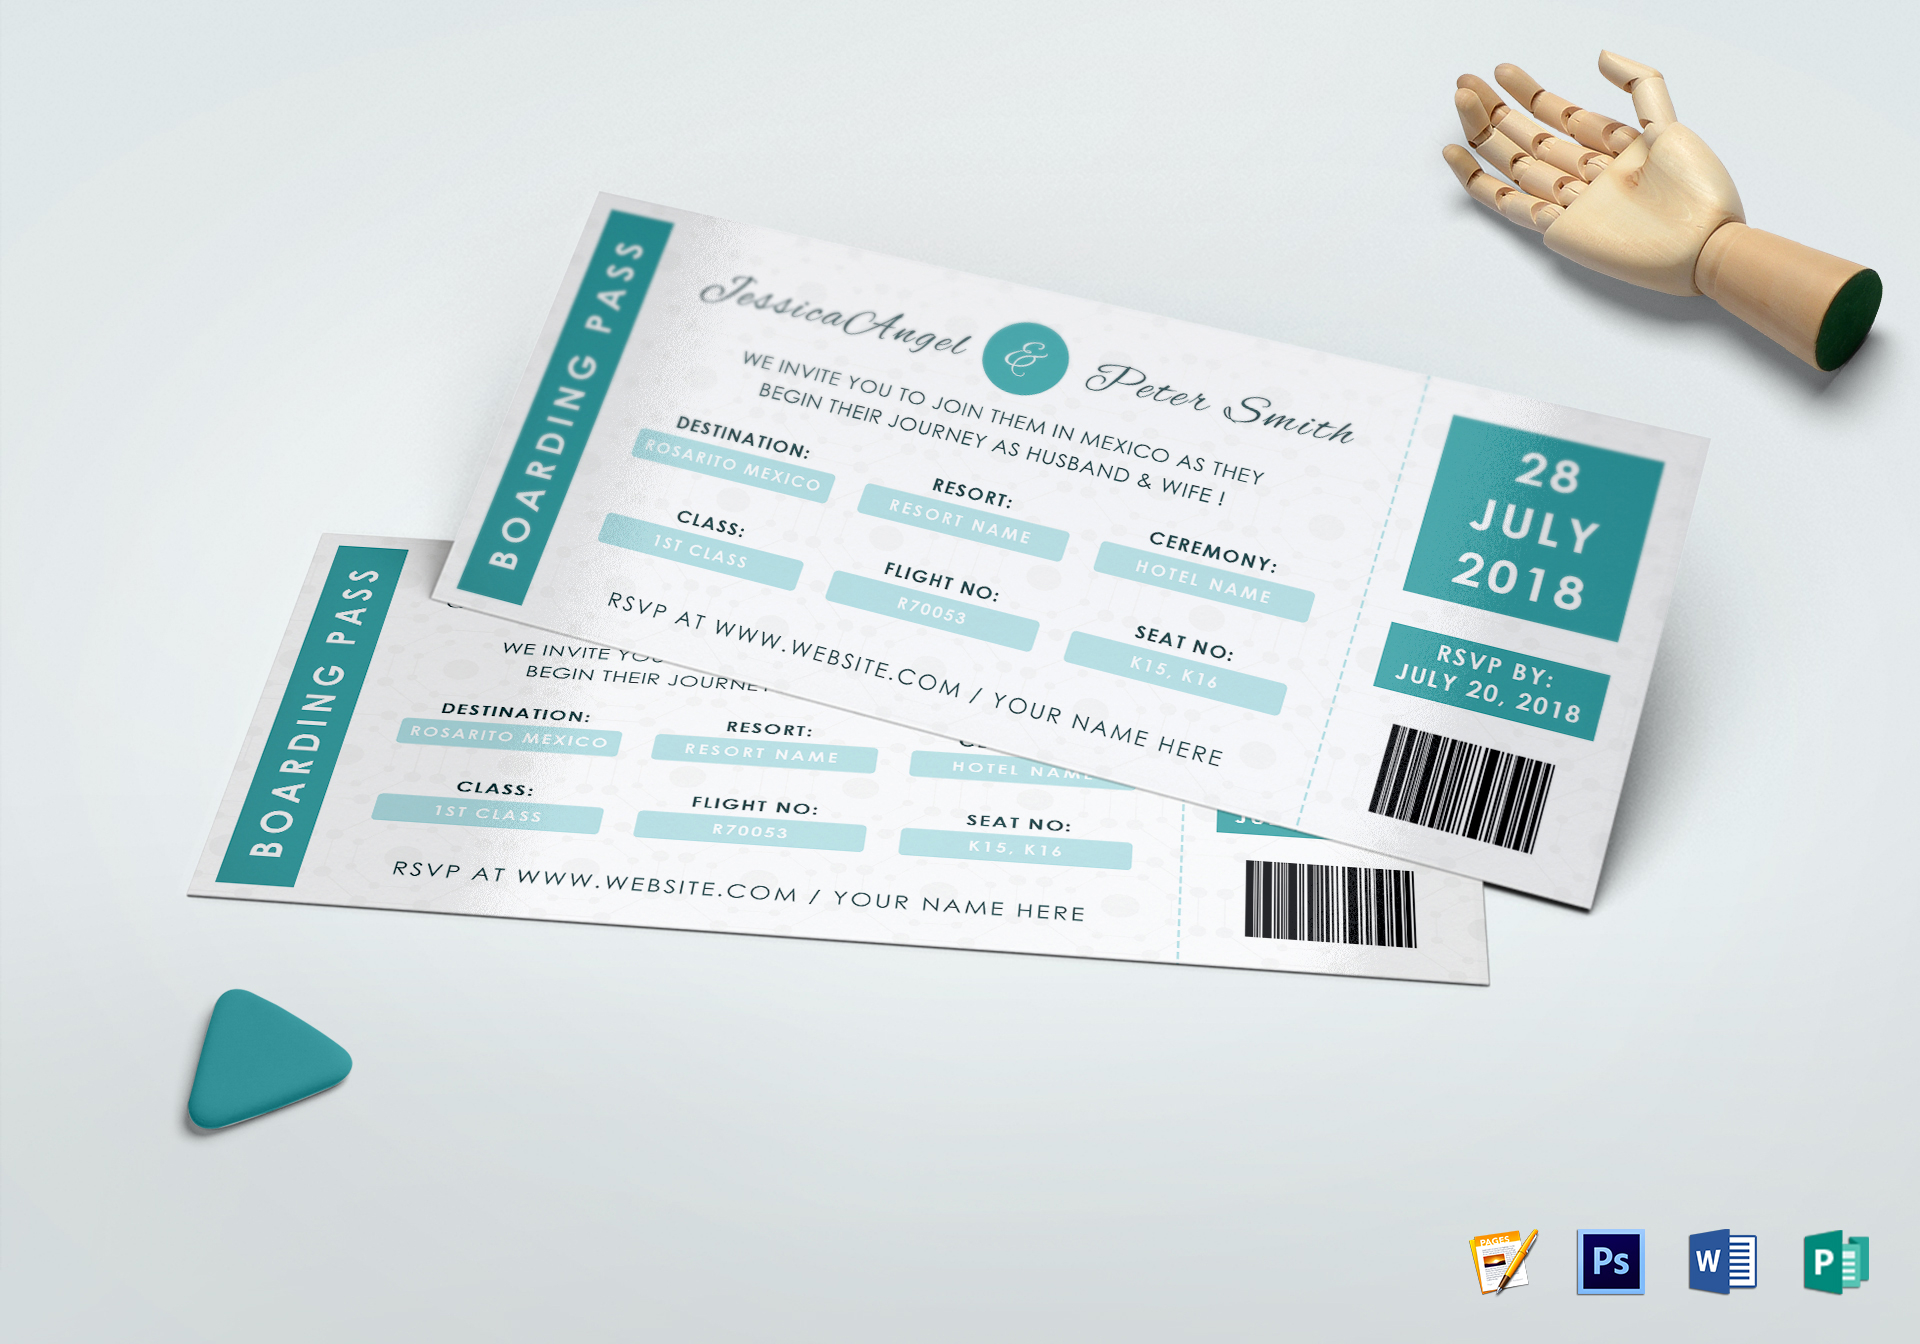 Wedding Ceremony Invitation Ticket